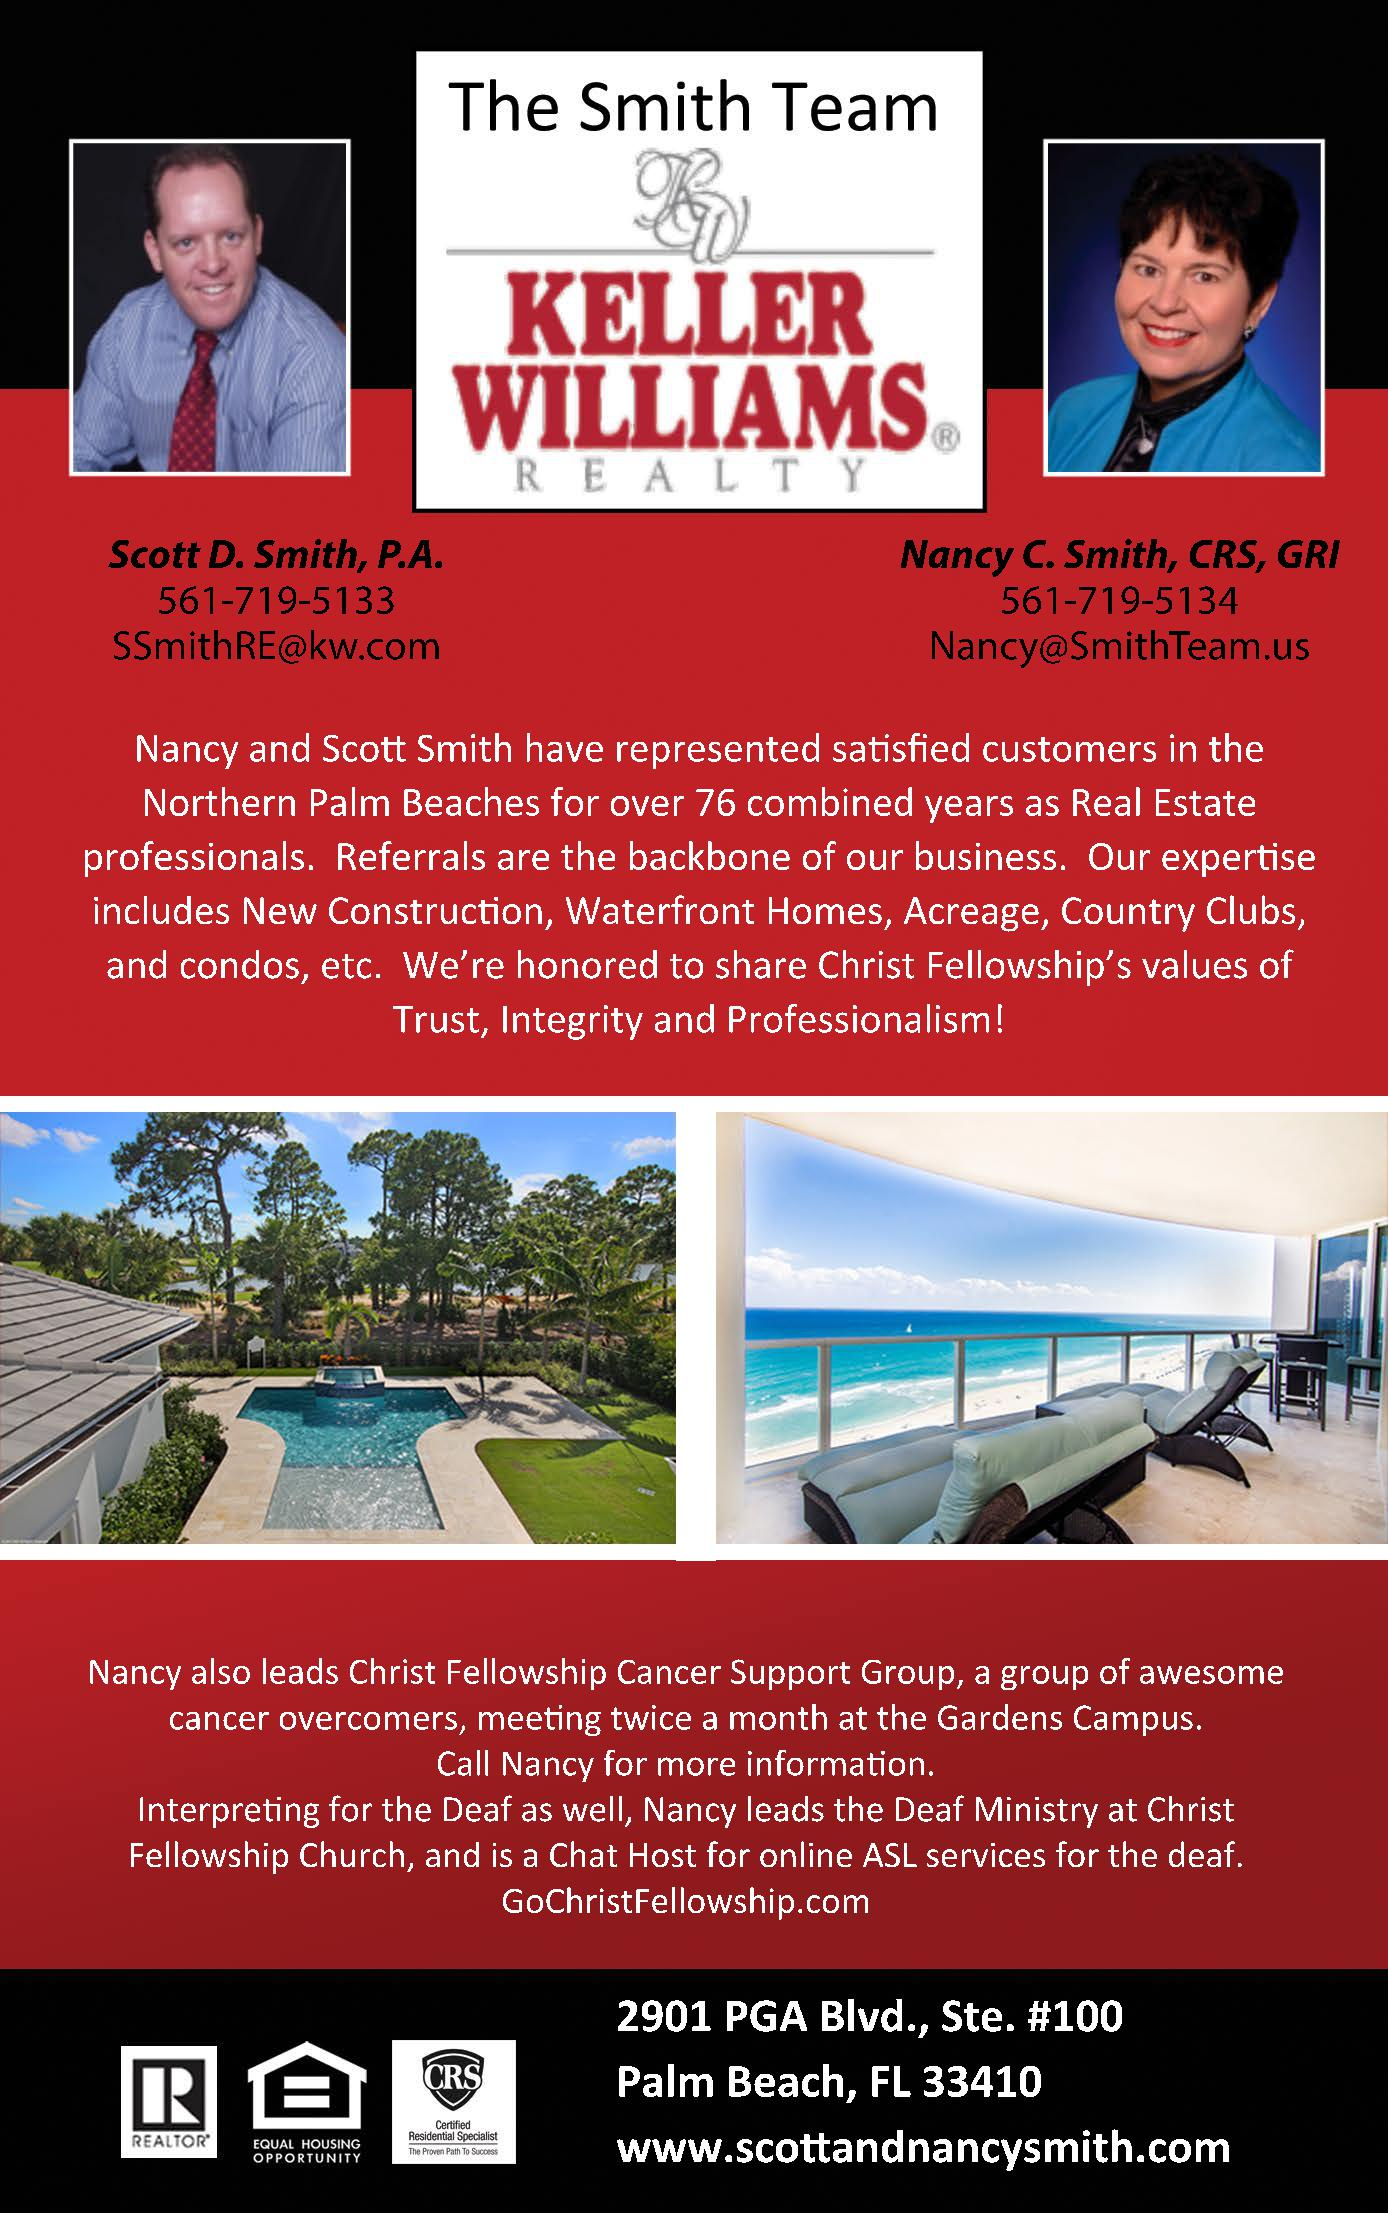 Keller Williams Realty - Smith